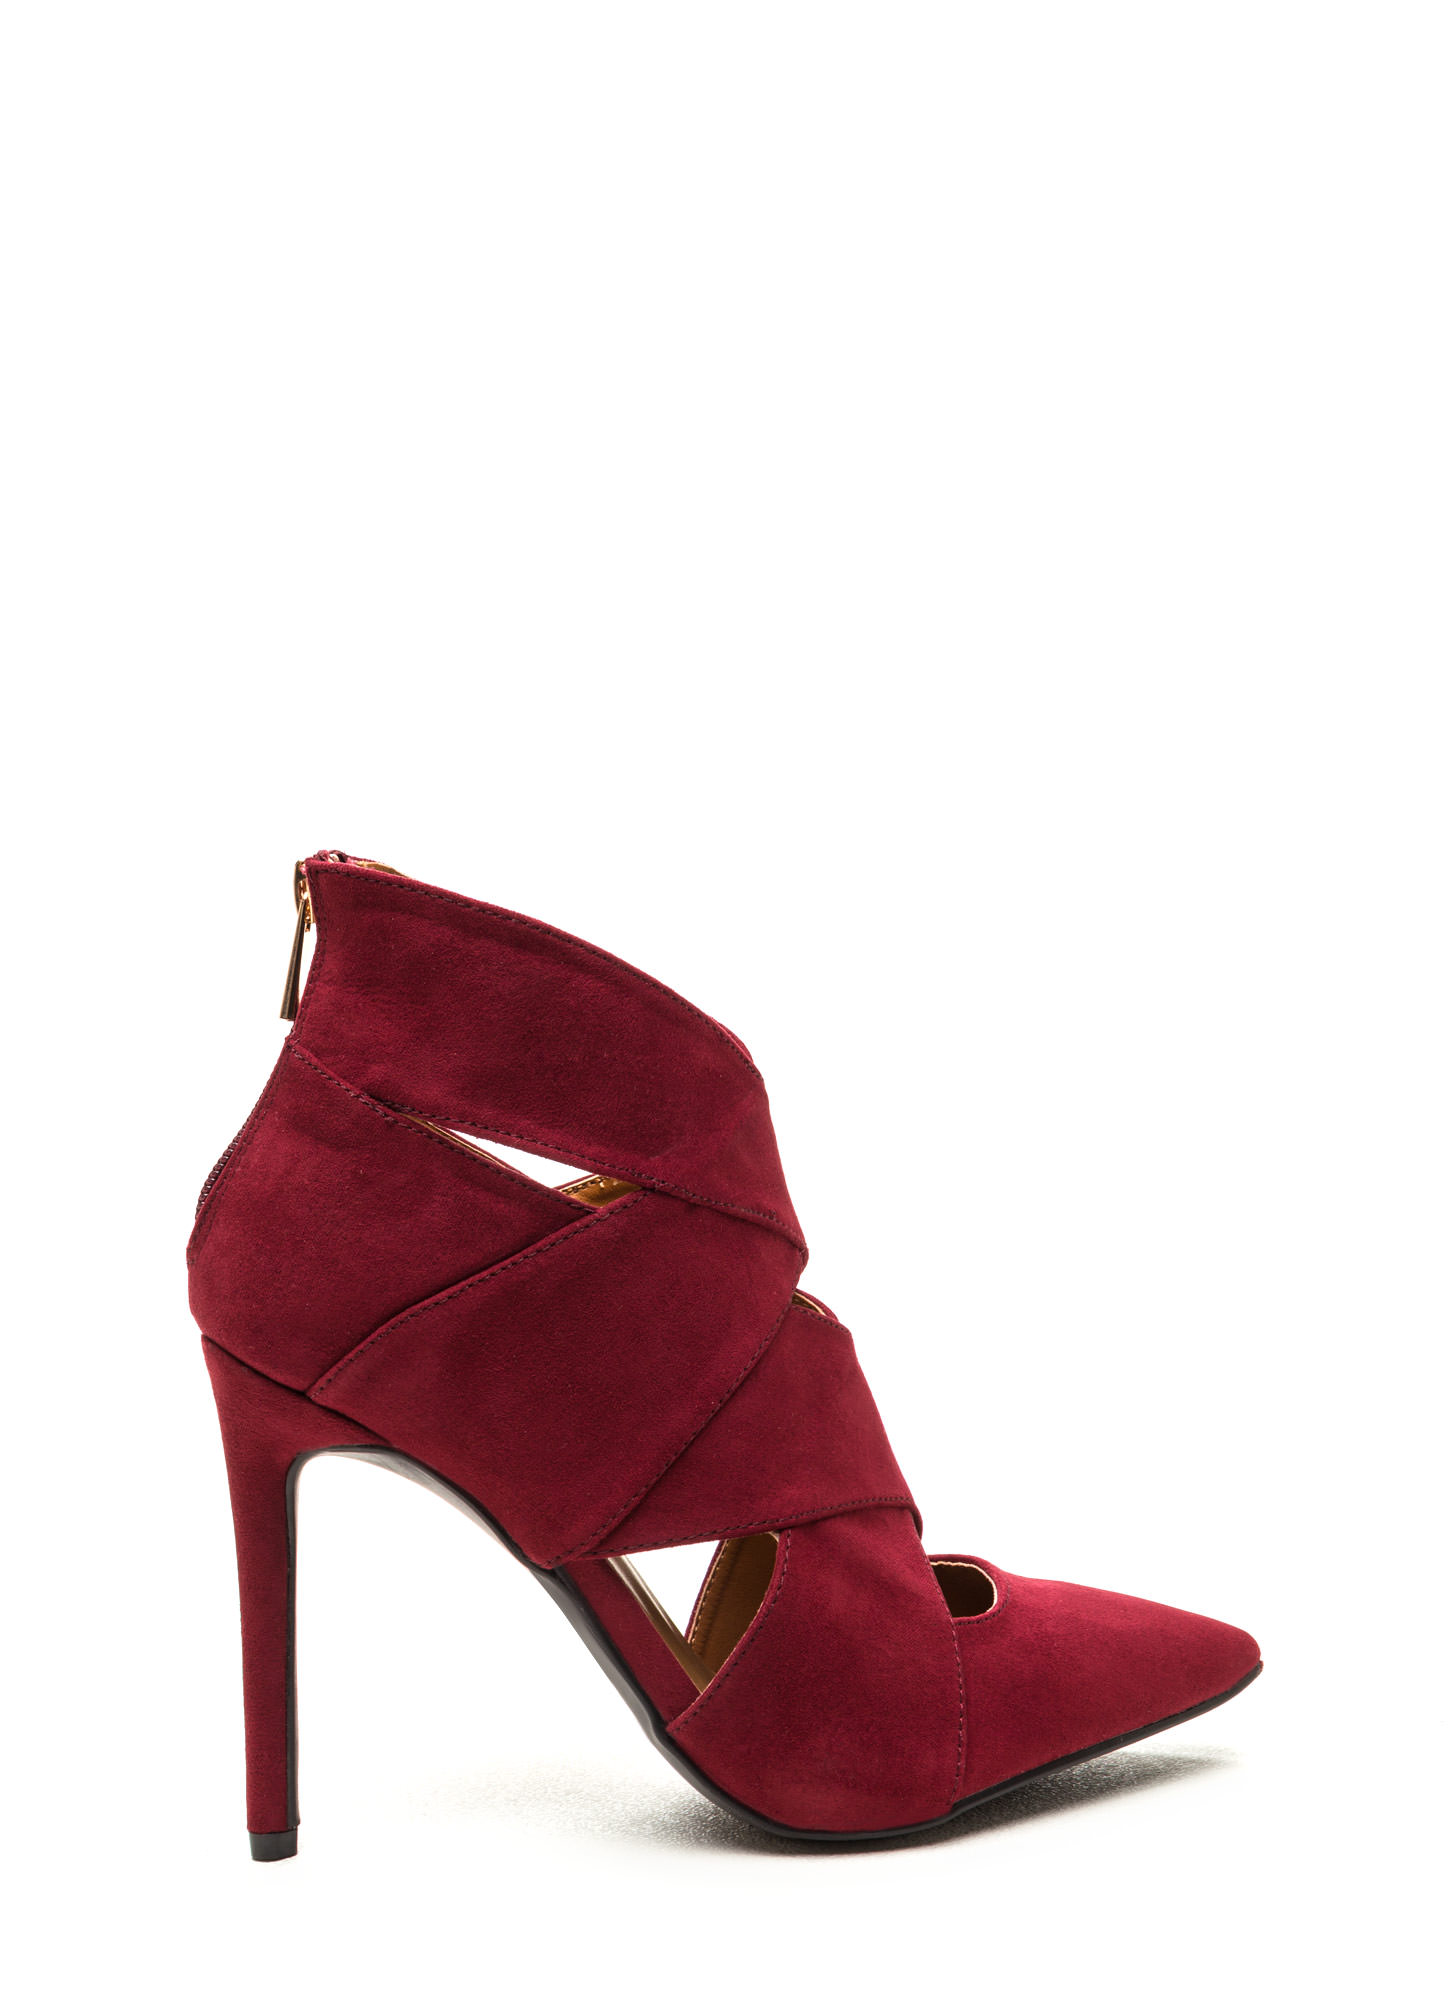 Wrap Star Strappy Cut-Out Heels MERLOT